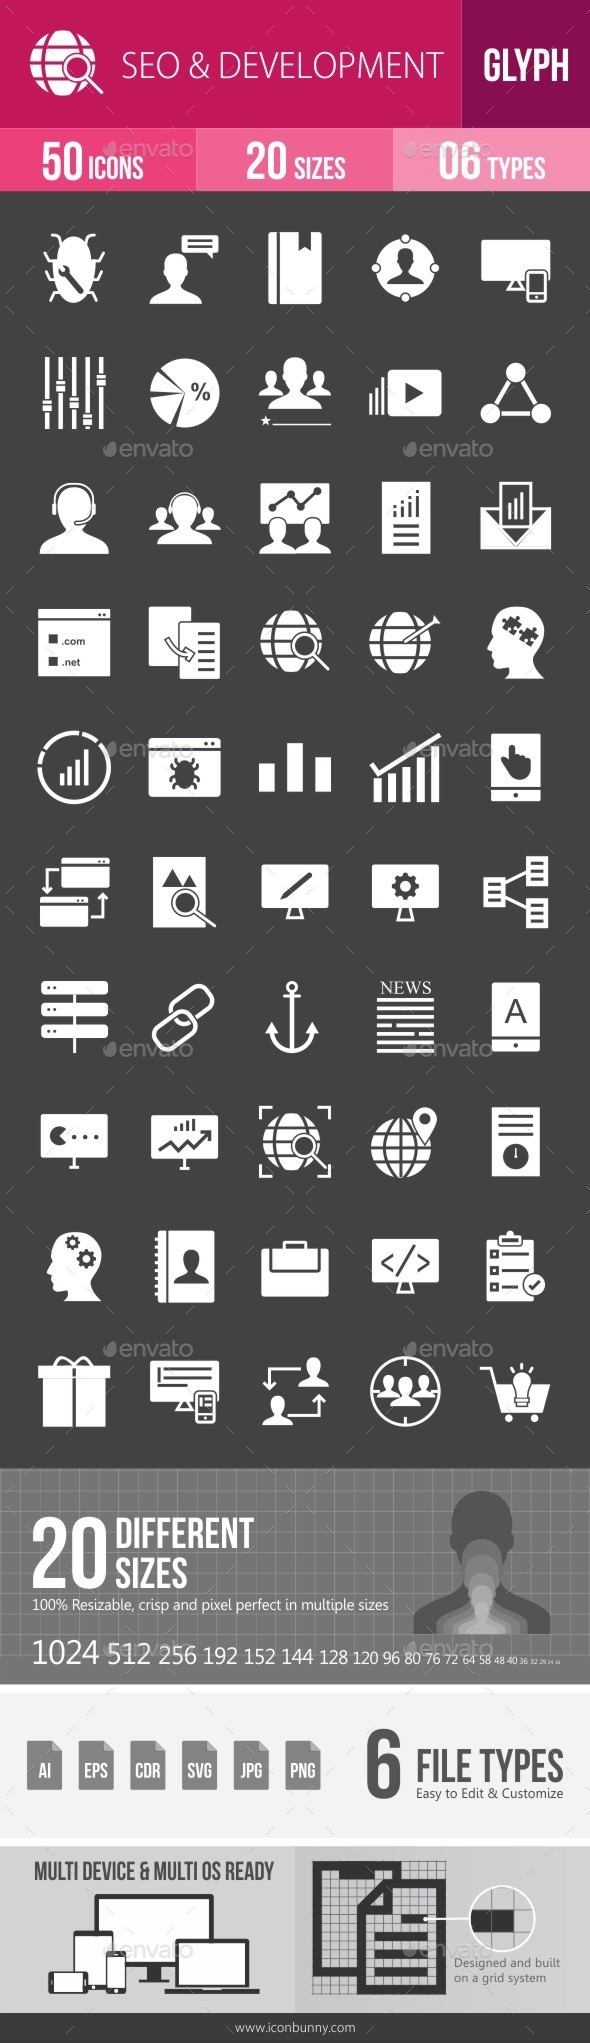 SEO & Development Services Glyph Inverted Icons - Icons